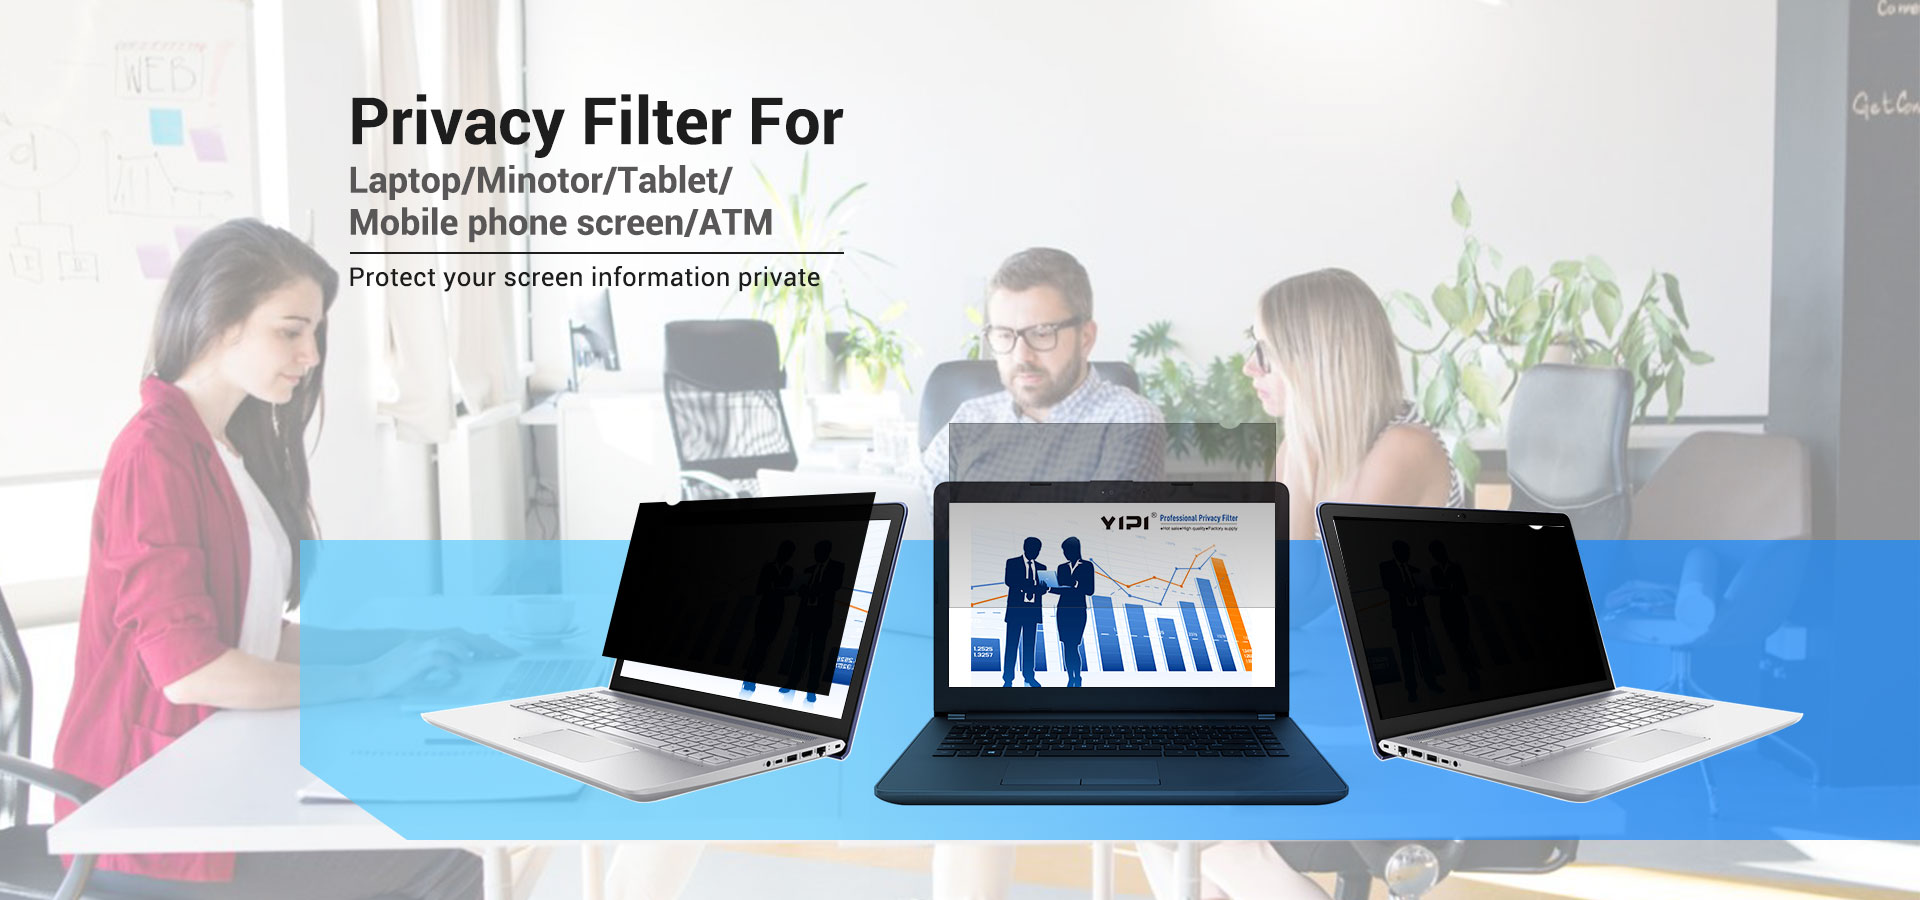 Buy a Premium Privacy Filter for your Laptop. Fits any laptop & notebook computer. Guarantees the Confidentiality of your Laptop Screen.